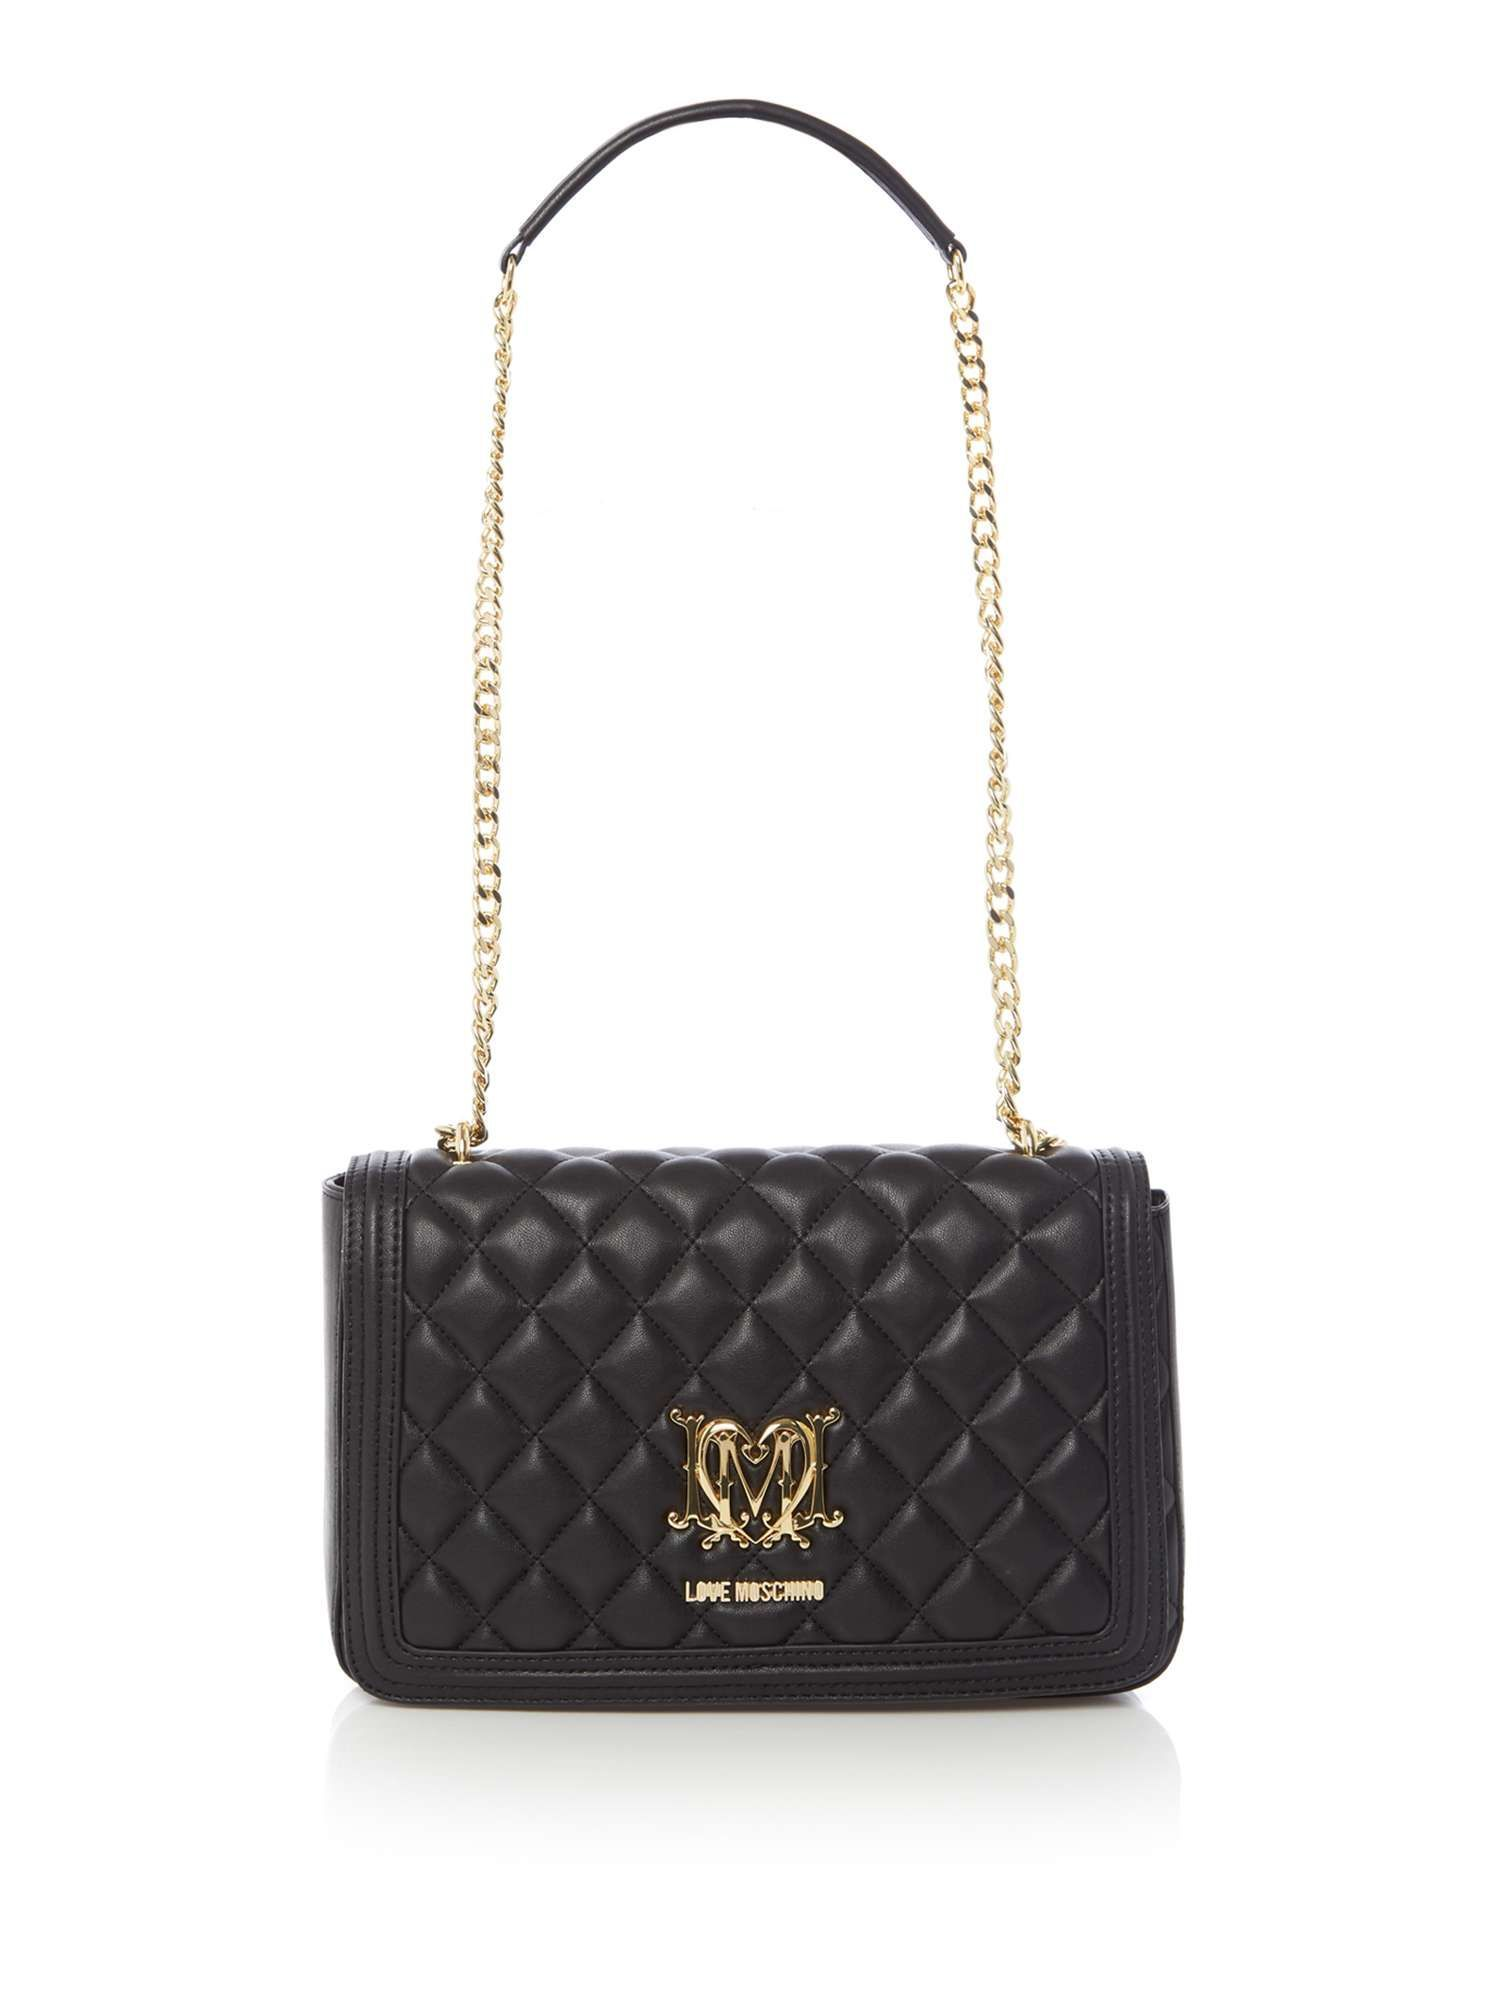 f68f7bf8d5 Buy your Love Moschino Superquilt Foldover Bag online now at House ...